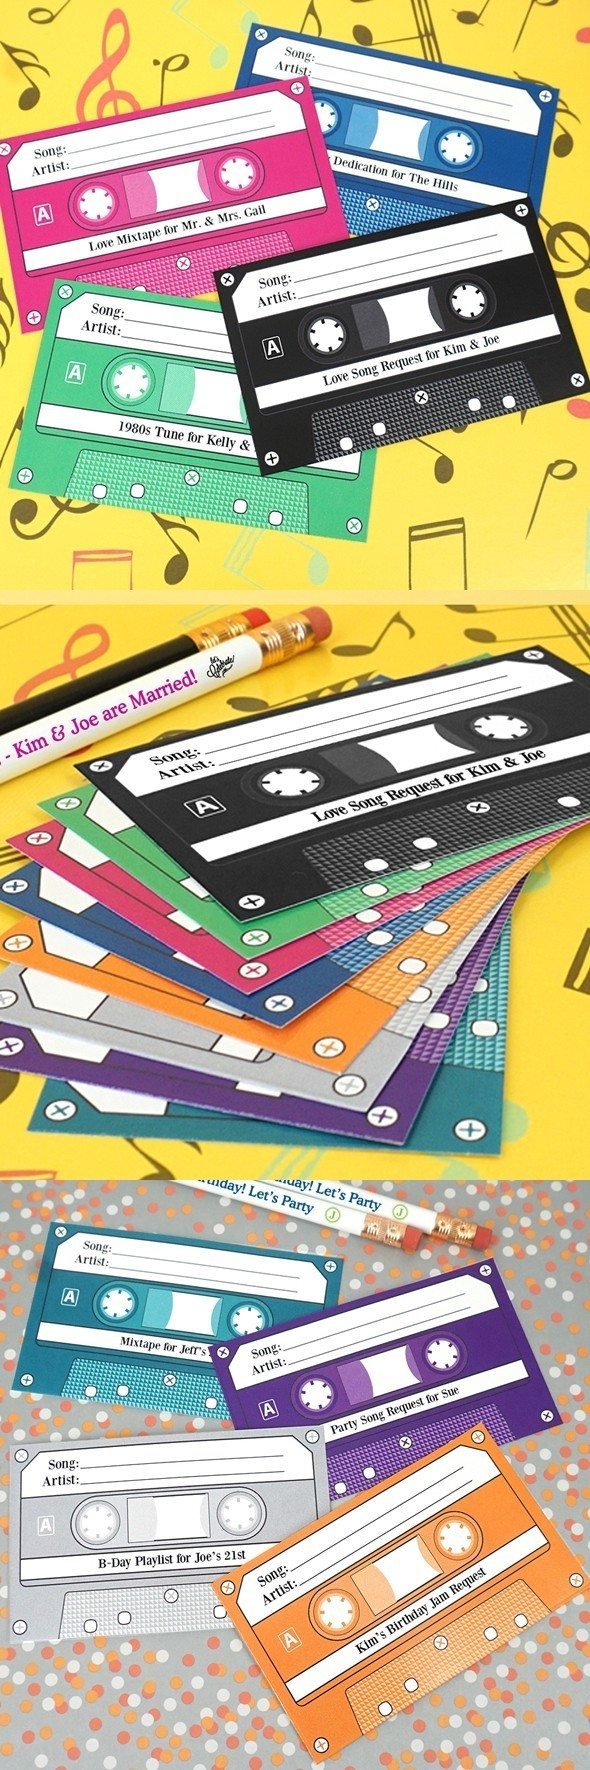 Personalized Retro Cassette-Tape Shaped Song Request Cards (15 Colors)